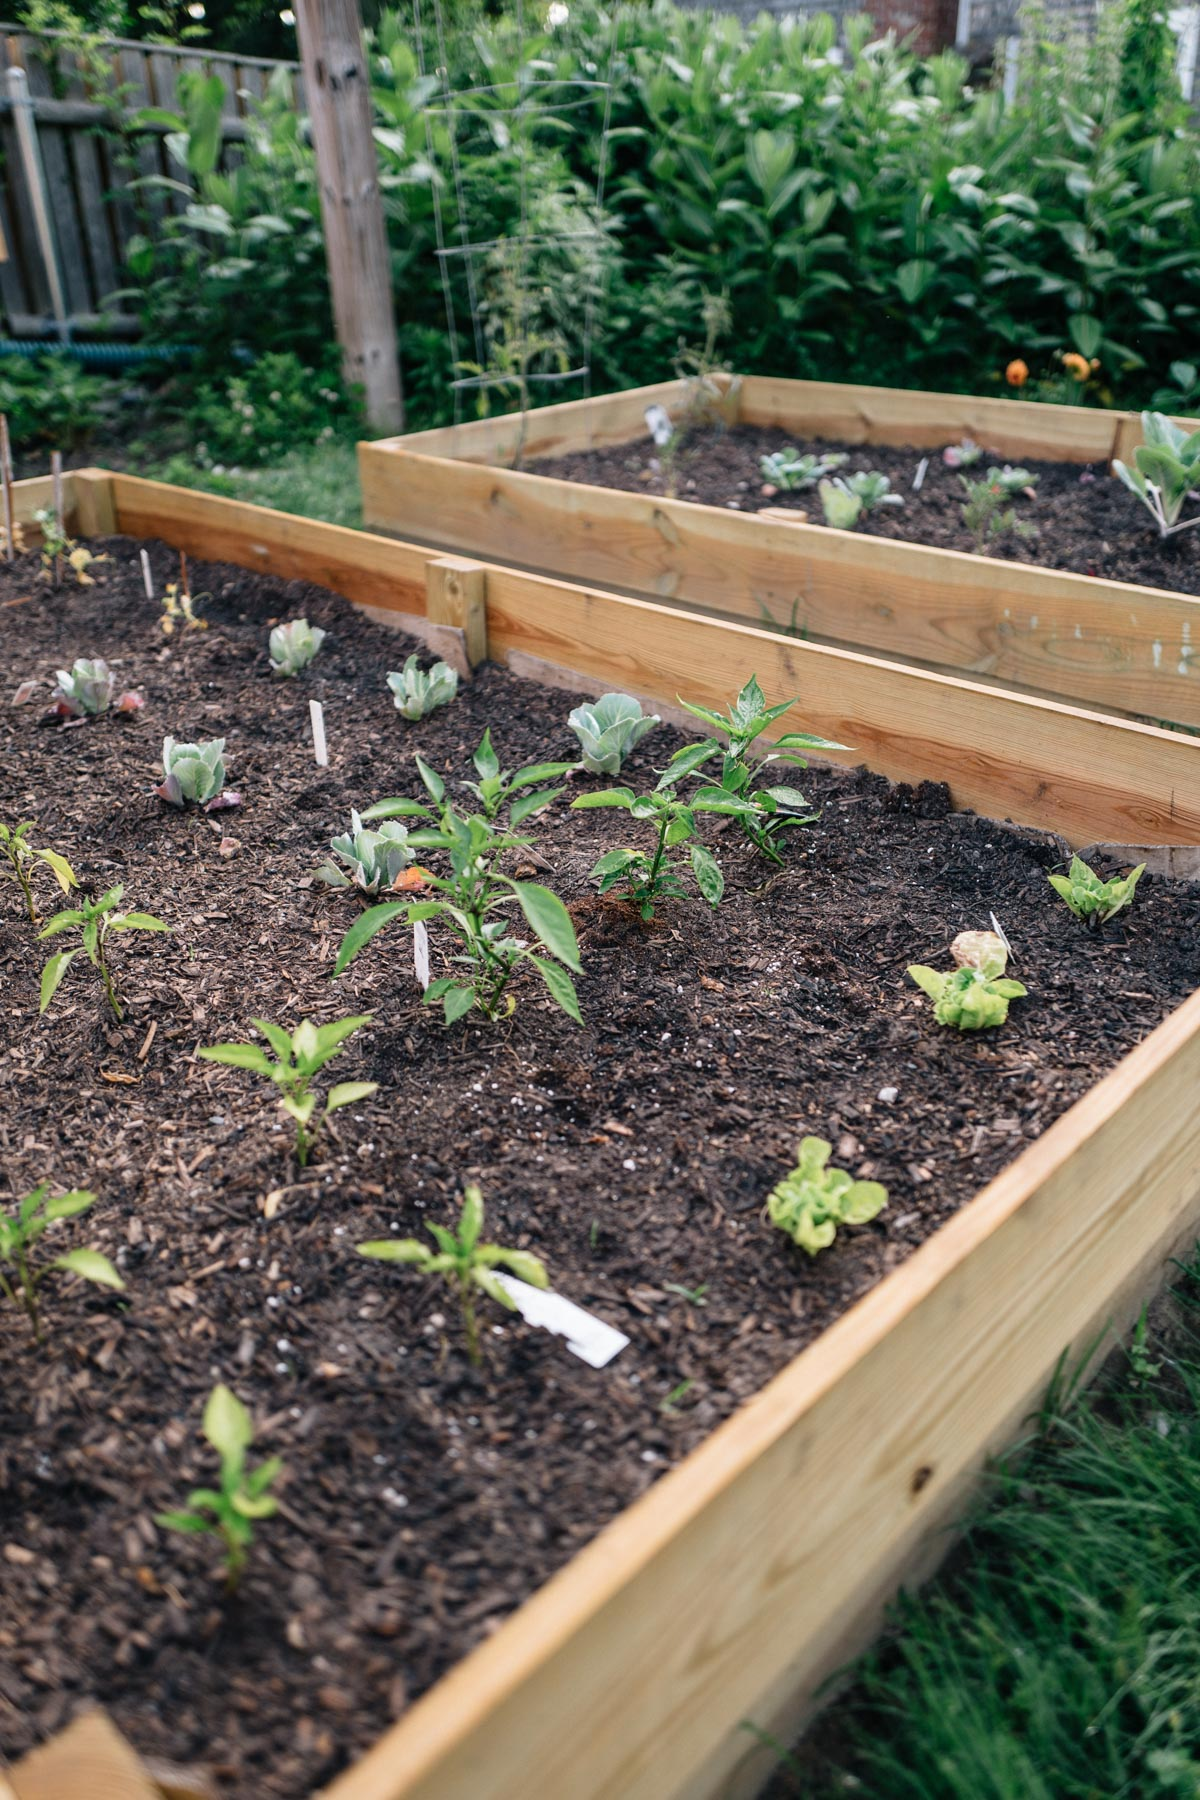 Jess Ann Kirby planted a garden in two raised beds in her back yard to grow her own produce and to lessen her environmental impact